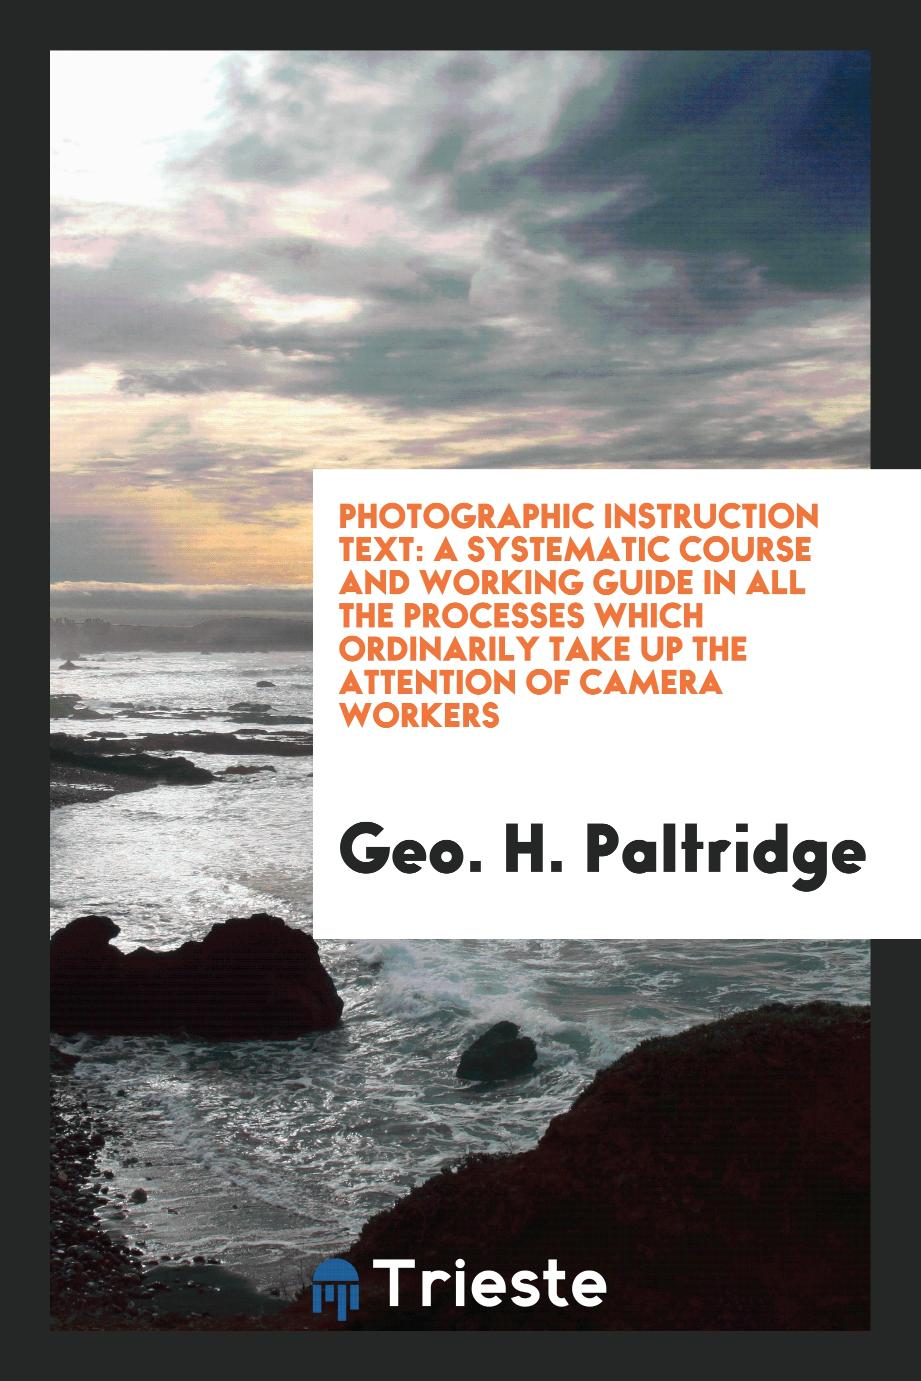 Photographic instruction text: a systematic course and working guide in all the processes which ordinarily take up the attention of camera workers